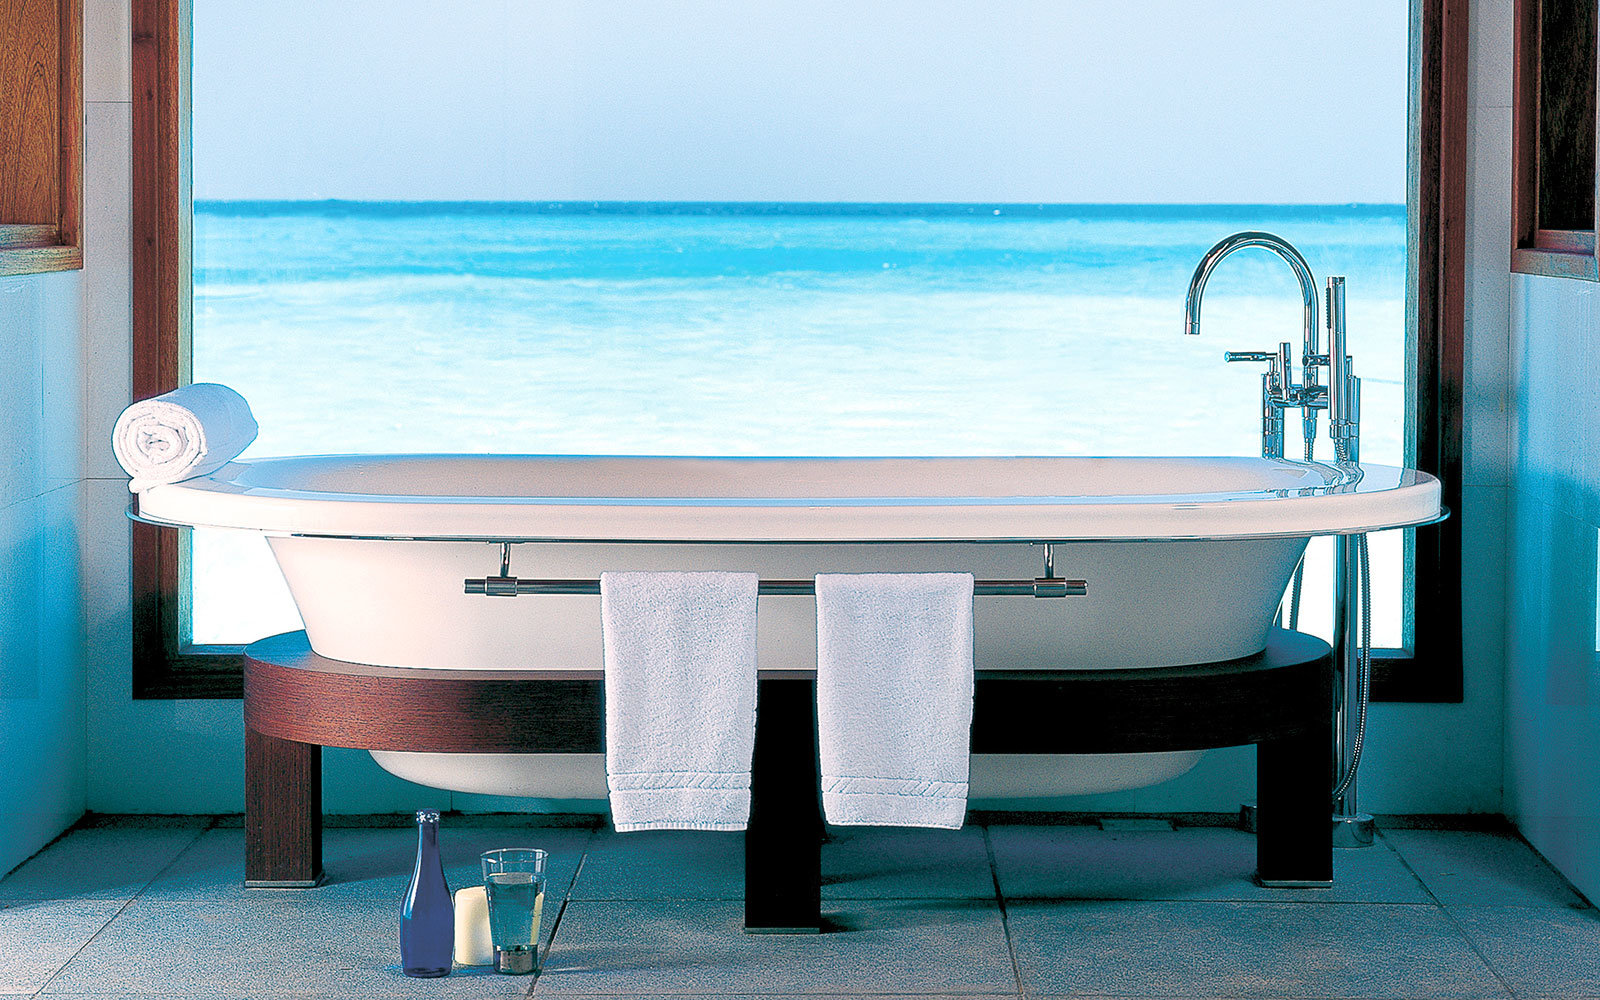 19 Bathtubs Around The World With Epic Views Travel